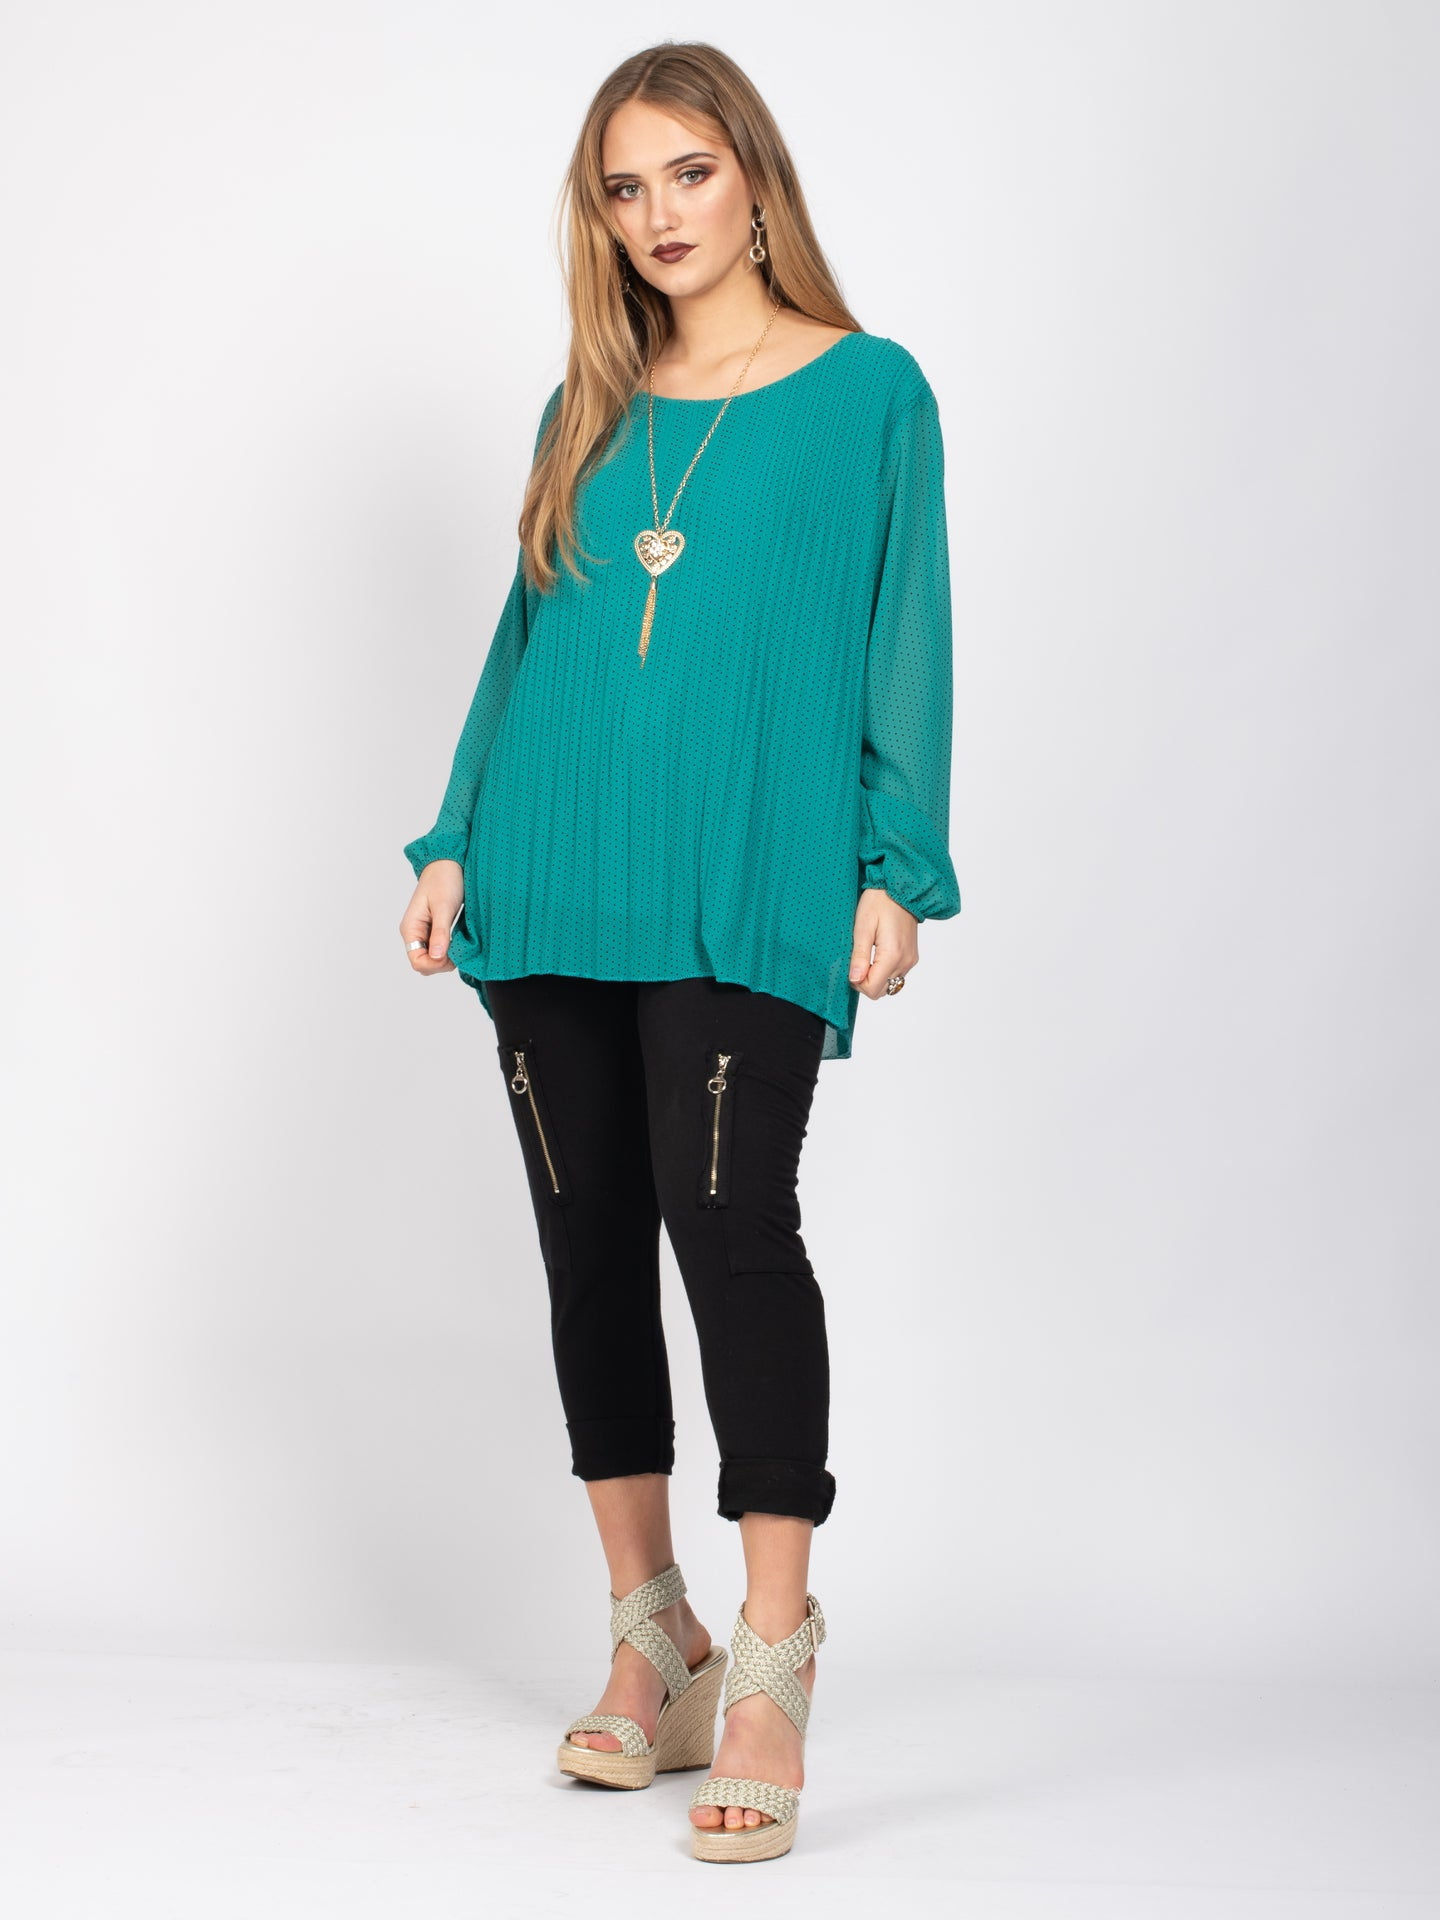 Pleated Blouse With Necklace, Green Polka